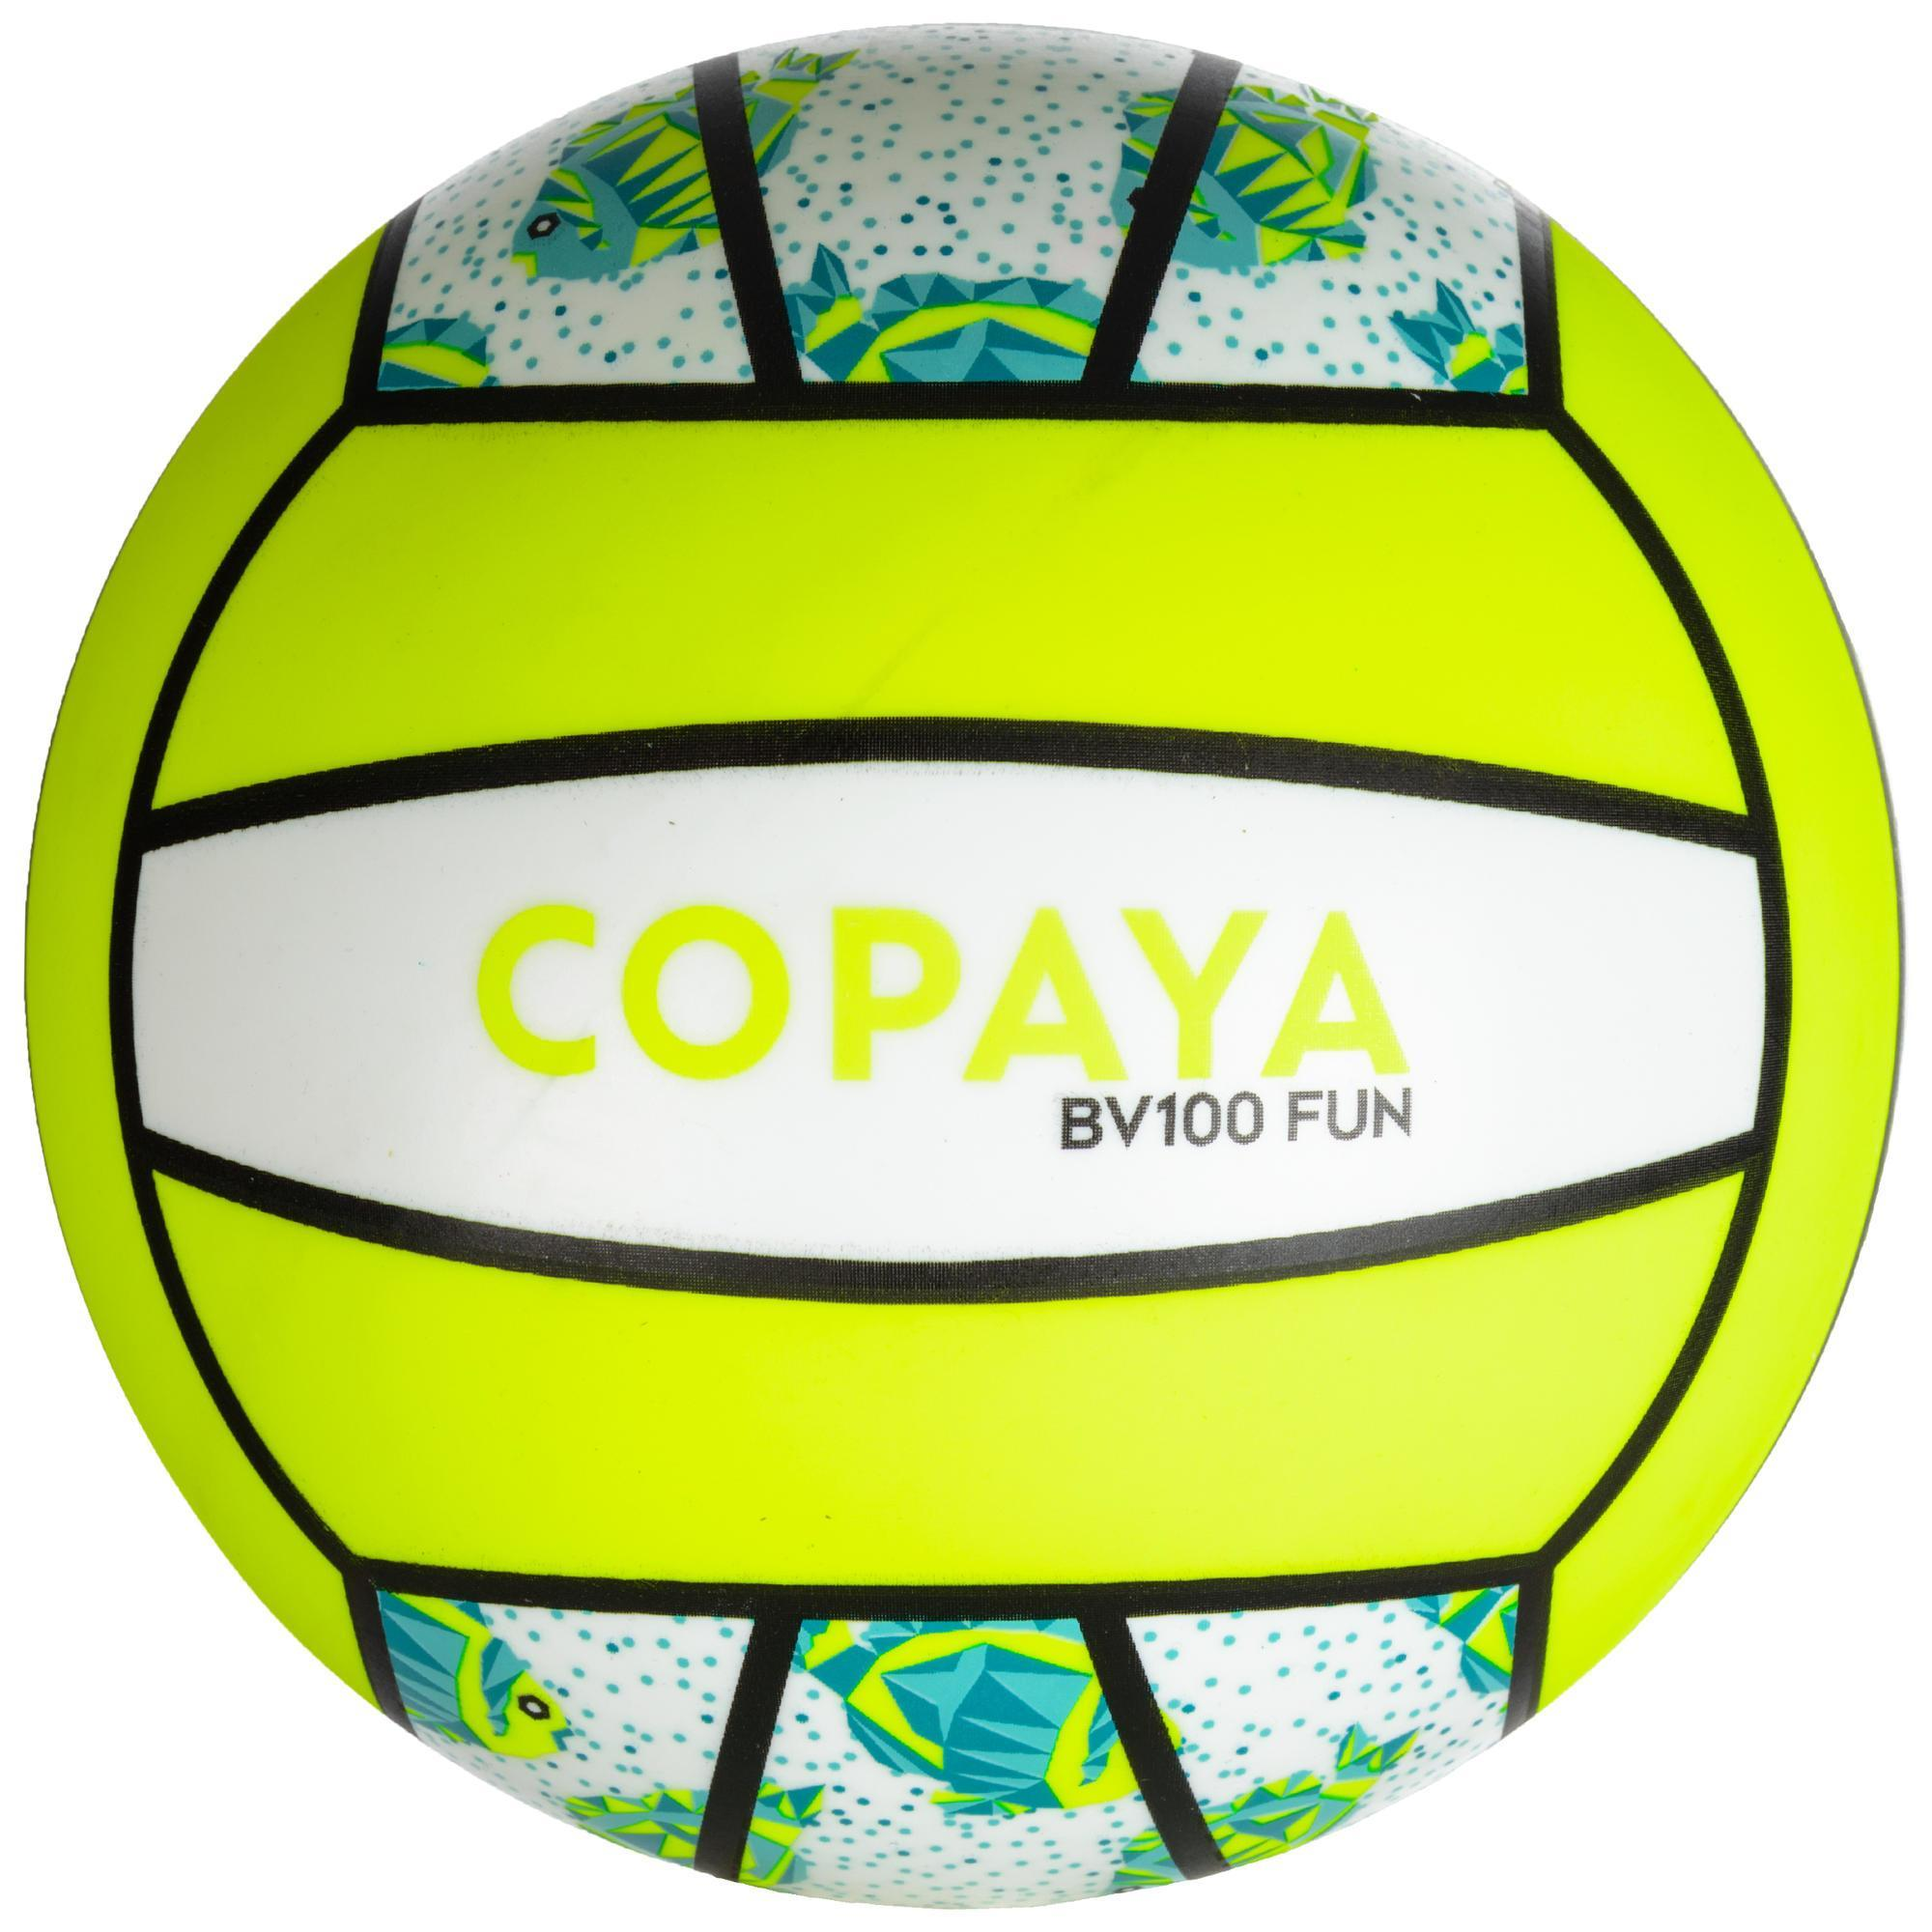 Copaya Beachvolleybal BV100 fun